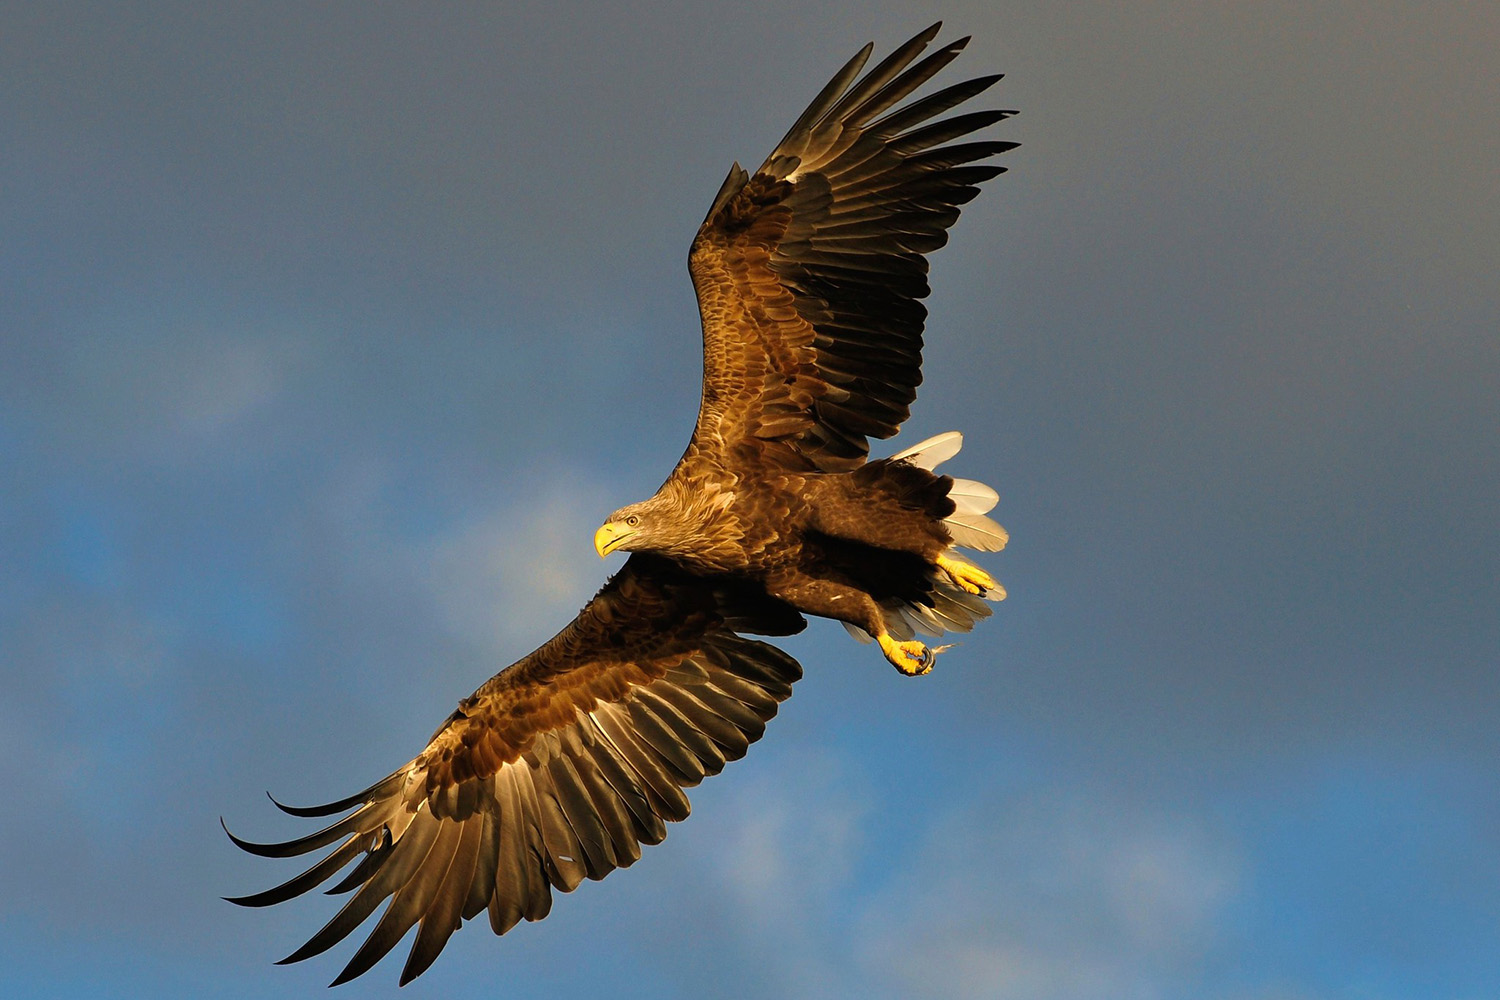 Flatanger central Norway. Probably the best place to photograph white tailed eagles in the world!